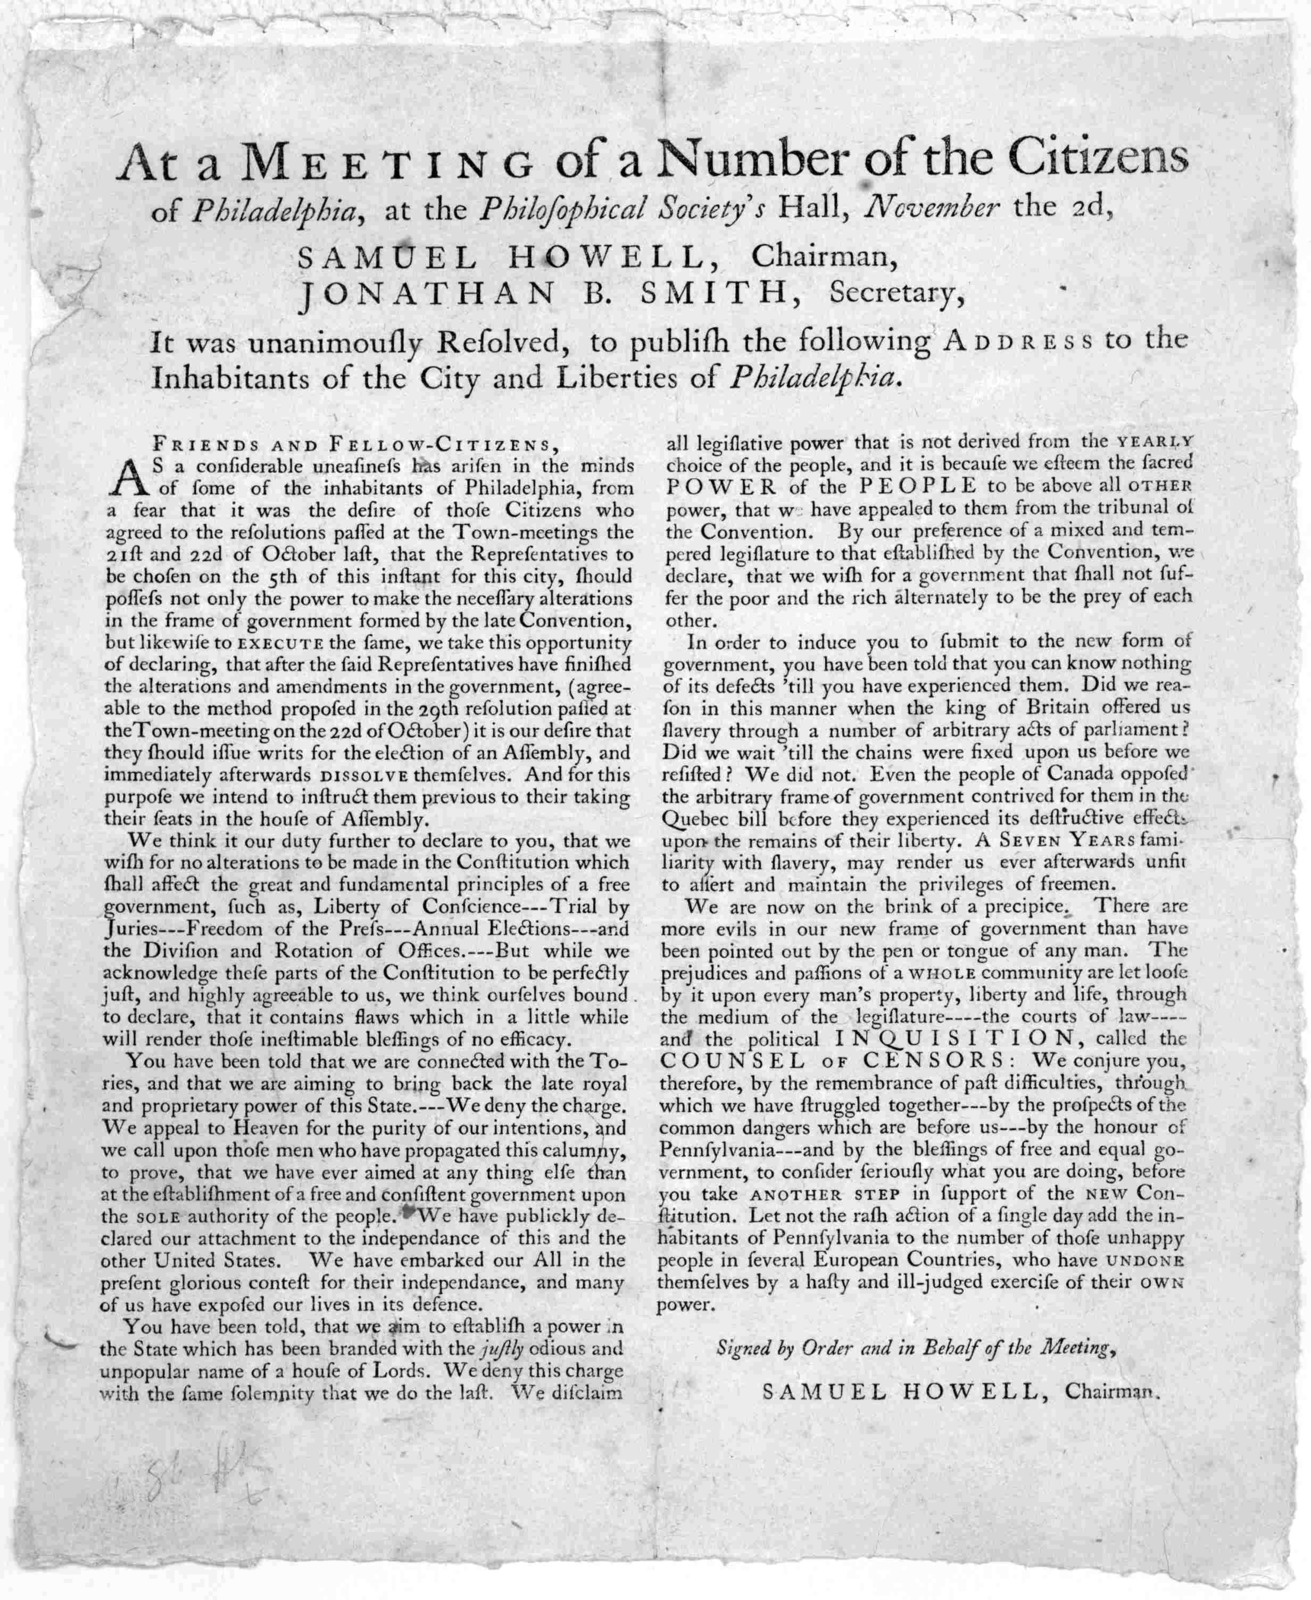 At a meeting of a number of the Citizens of Philadelphia, at the Philosophical Society's Hall, November the 2d, Samuel Howell, Chairman. Jonathan B. Smith, Secretary. It was unanimously resolved, to publish the following address to the inhabitan